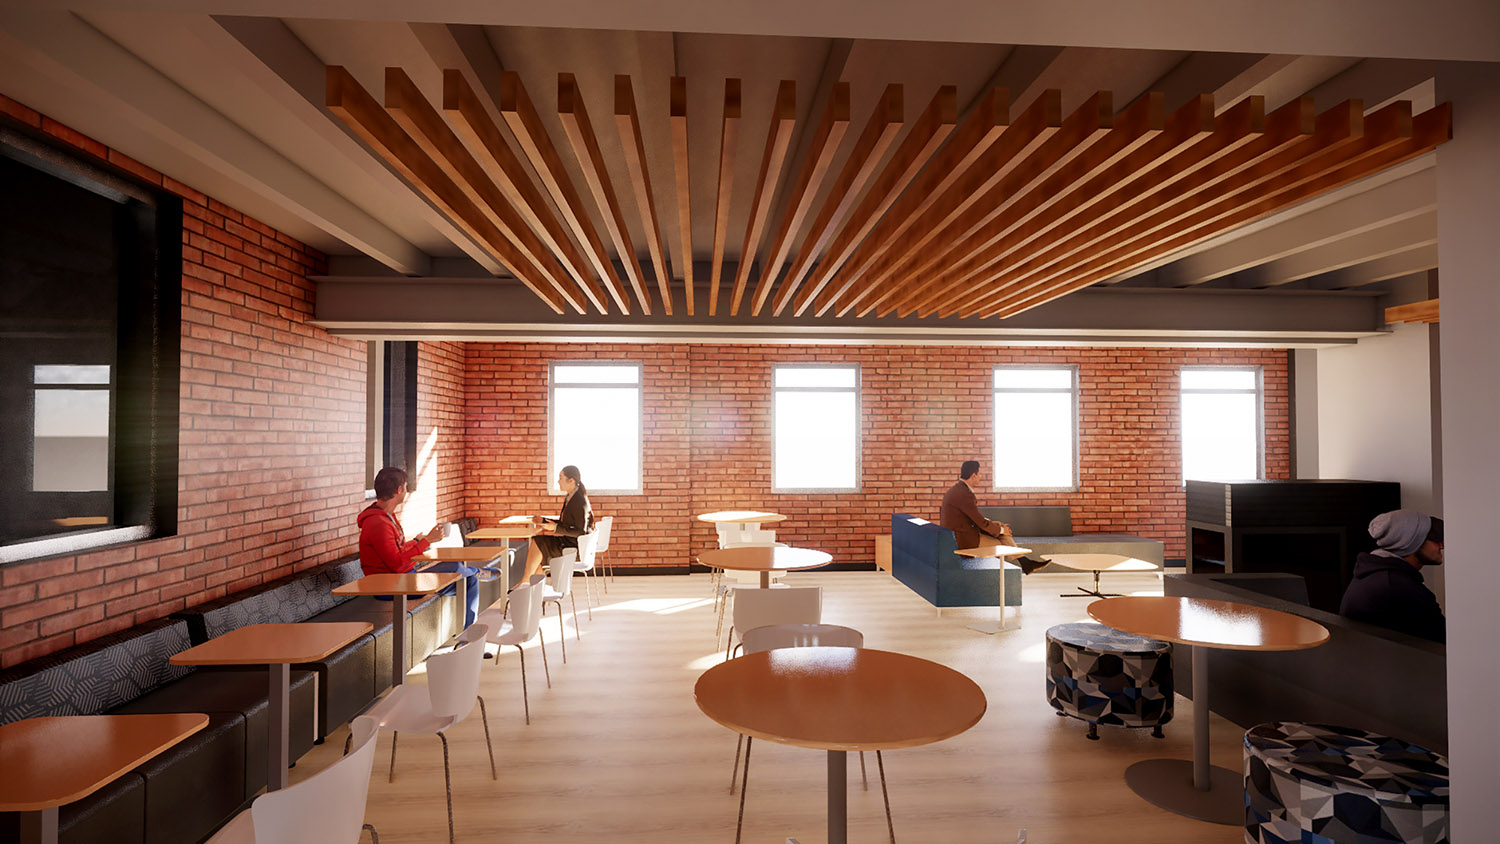 A remodeling project planned at West Center creates more spaces for students to socialize, study and collaborate.